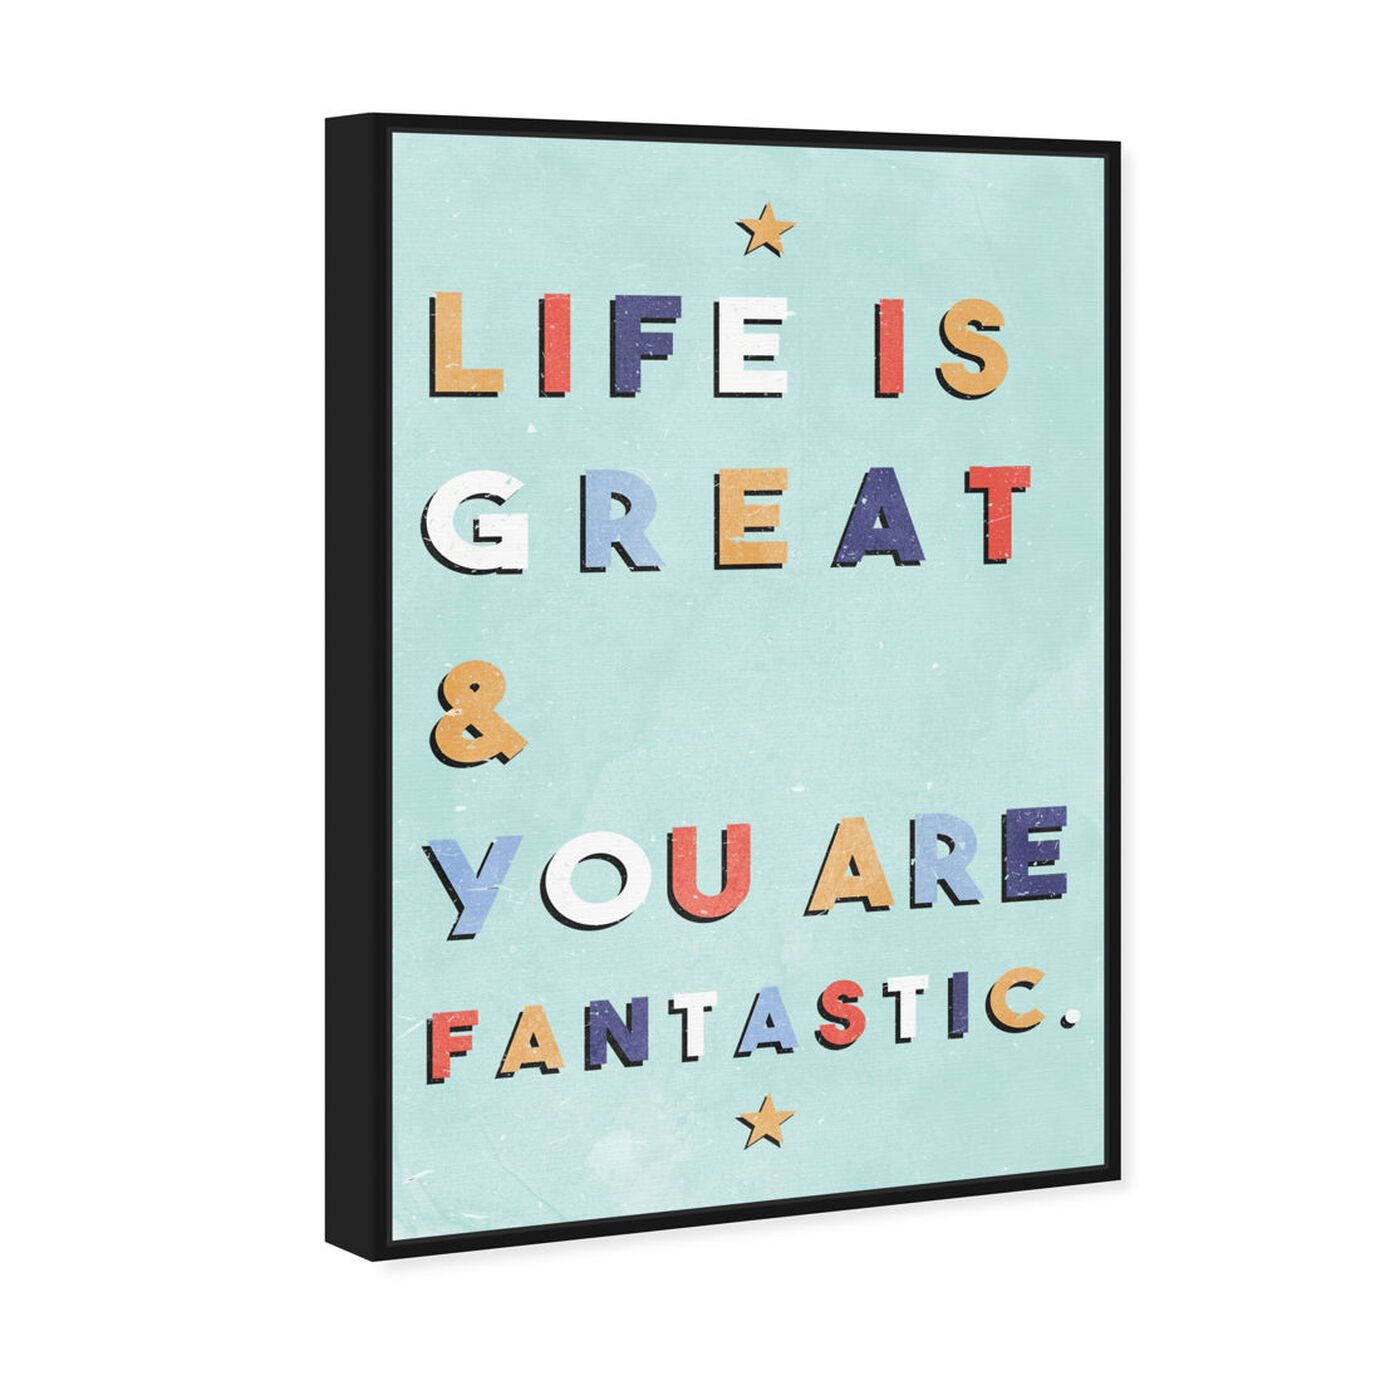 Angled view of Life Is Great and Fantastic featuring typography and quotes and inspirational quotes and sayings art.